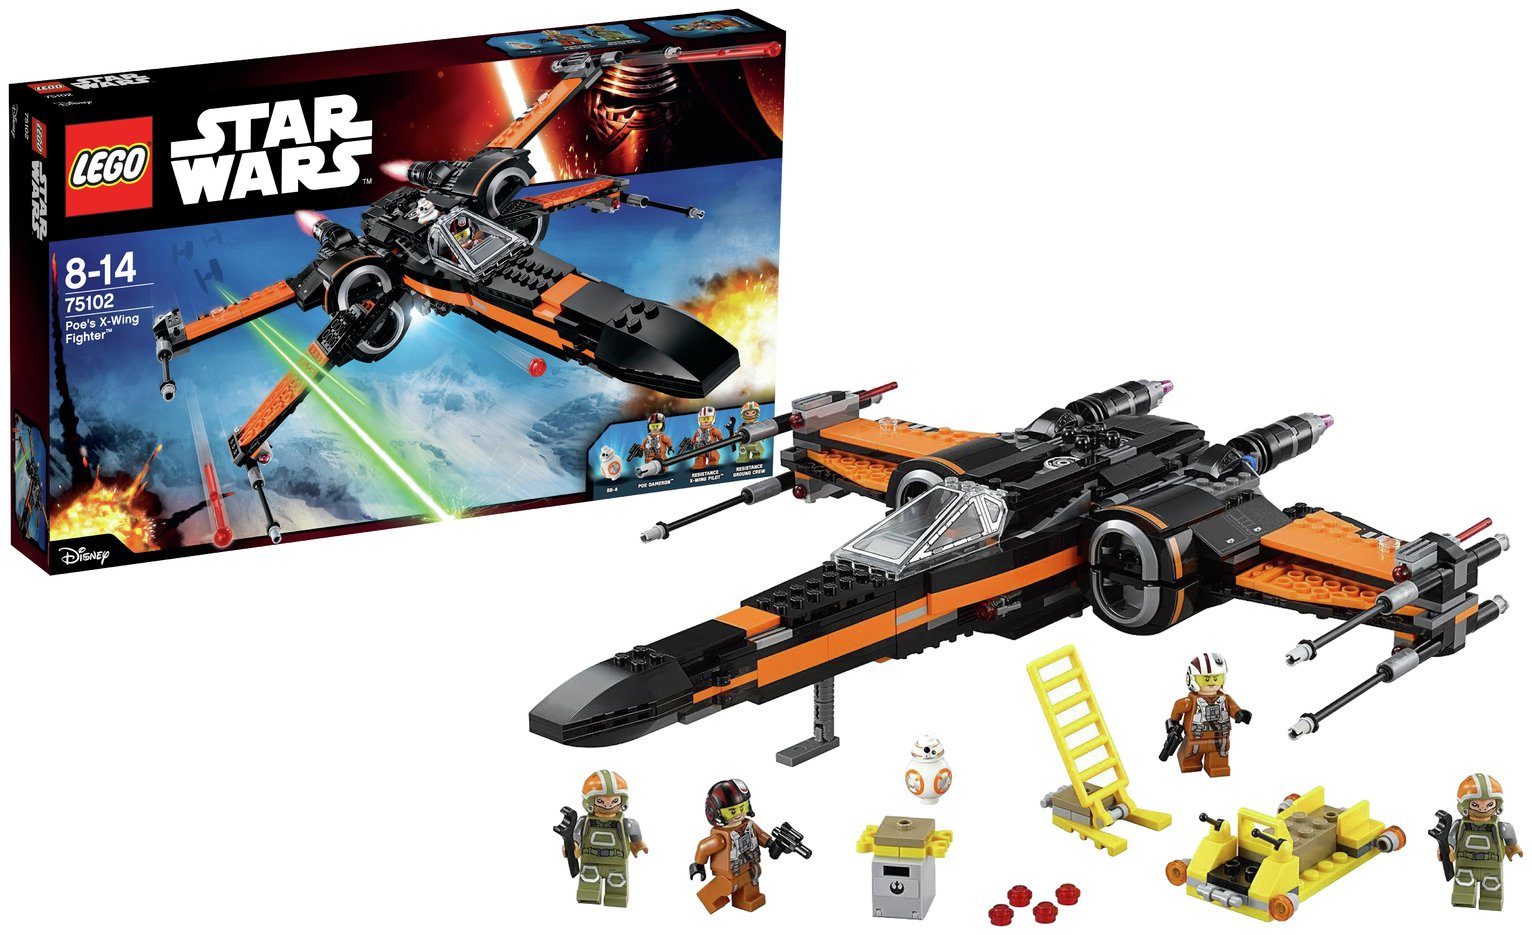 Image of LEGO - Star Wars - The Force Awakens Poe's X-Wing Fighter 75102